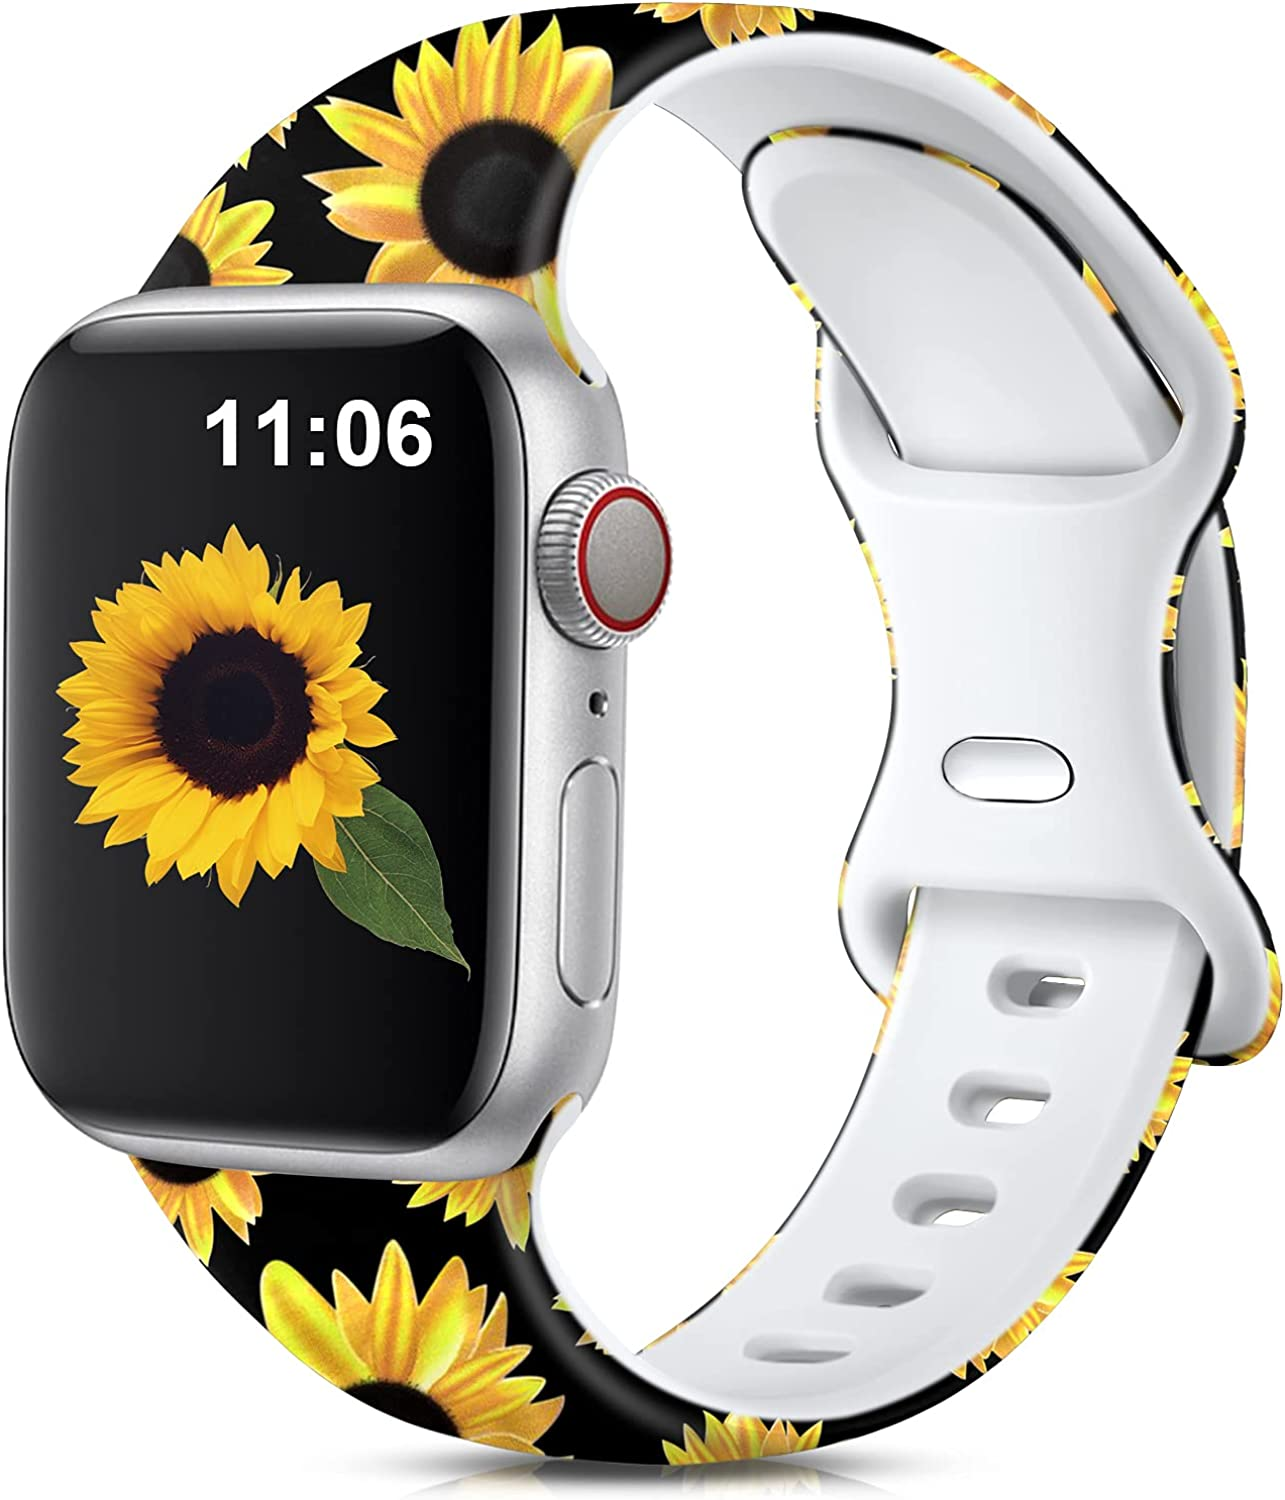 Muranne Compatible with Apple Watch Band 40mm 38mm for Women Ladies Girls Stylish Cute Fadeless Print Replacement Watch Bands Soft Silicone Sport Wristbands for iWatch SE Series 6 5 4 3 2 1